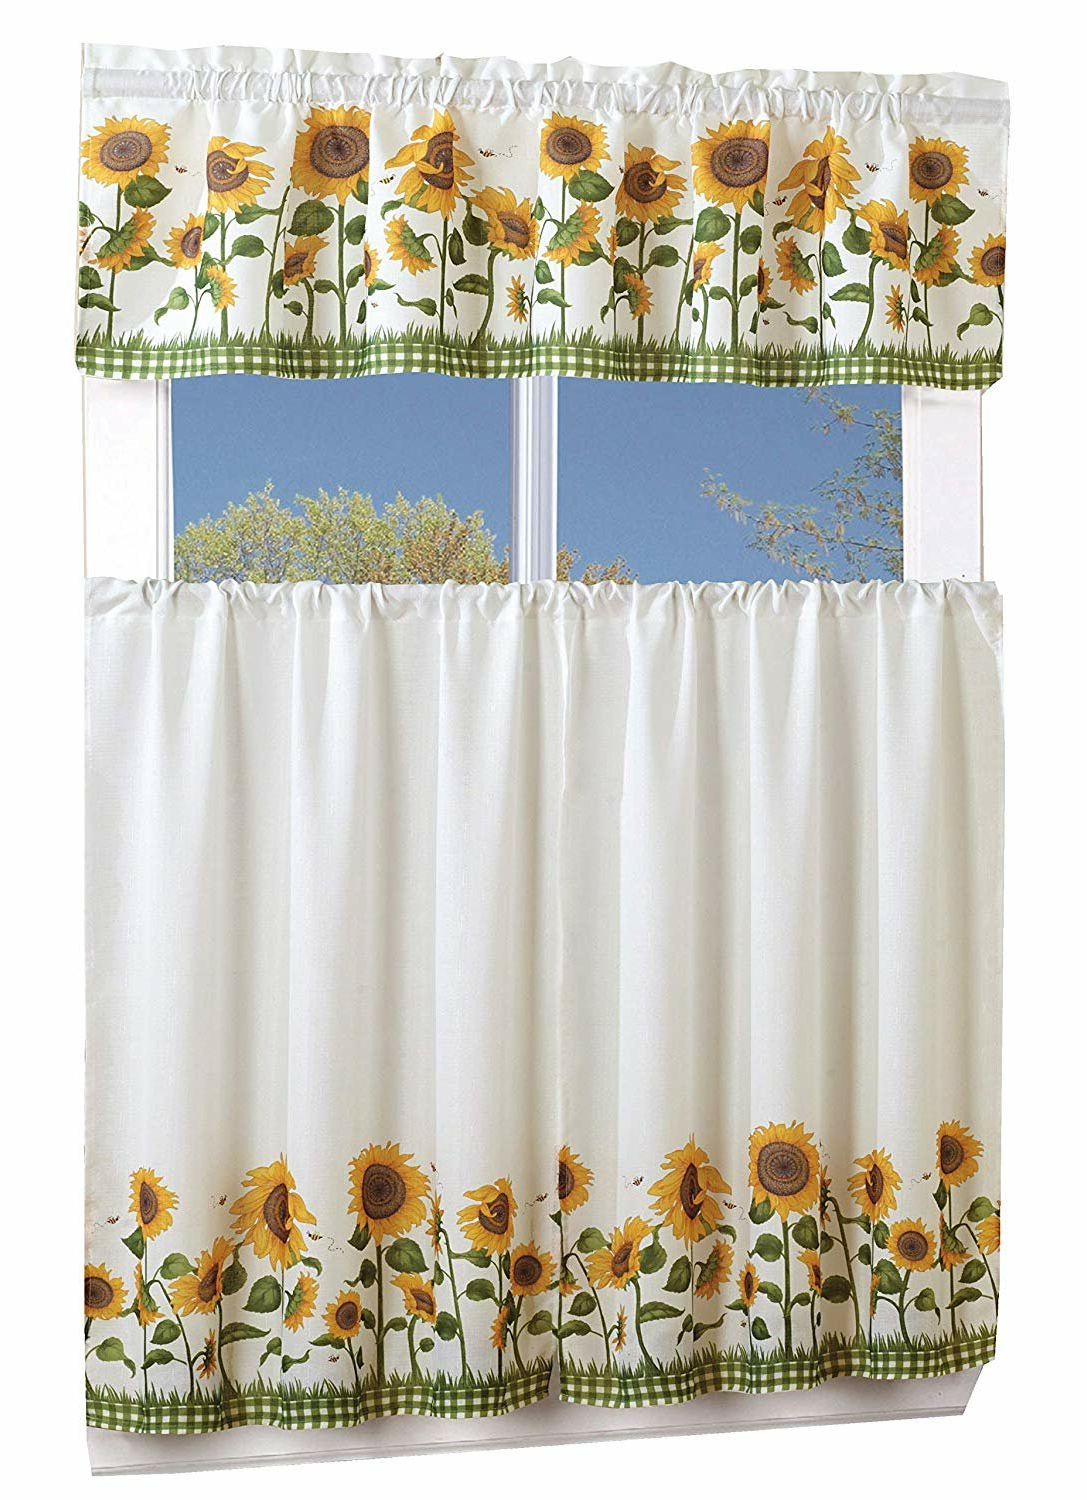 Famous Lamont 3 Piece Sunflower Curtain Set Inside Traditional Tailored Window Curtains With Embroidered Yellow Sunflowers (View 9 of 20)